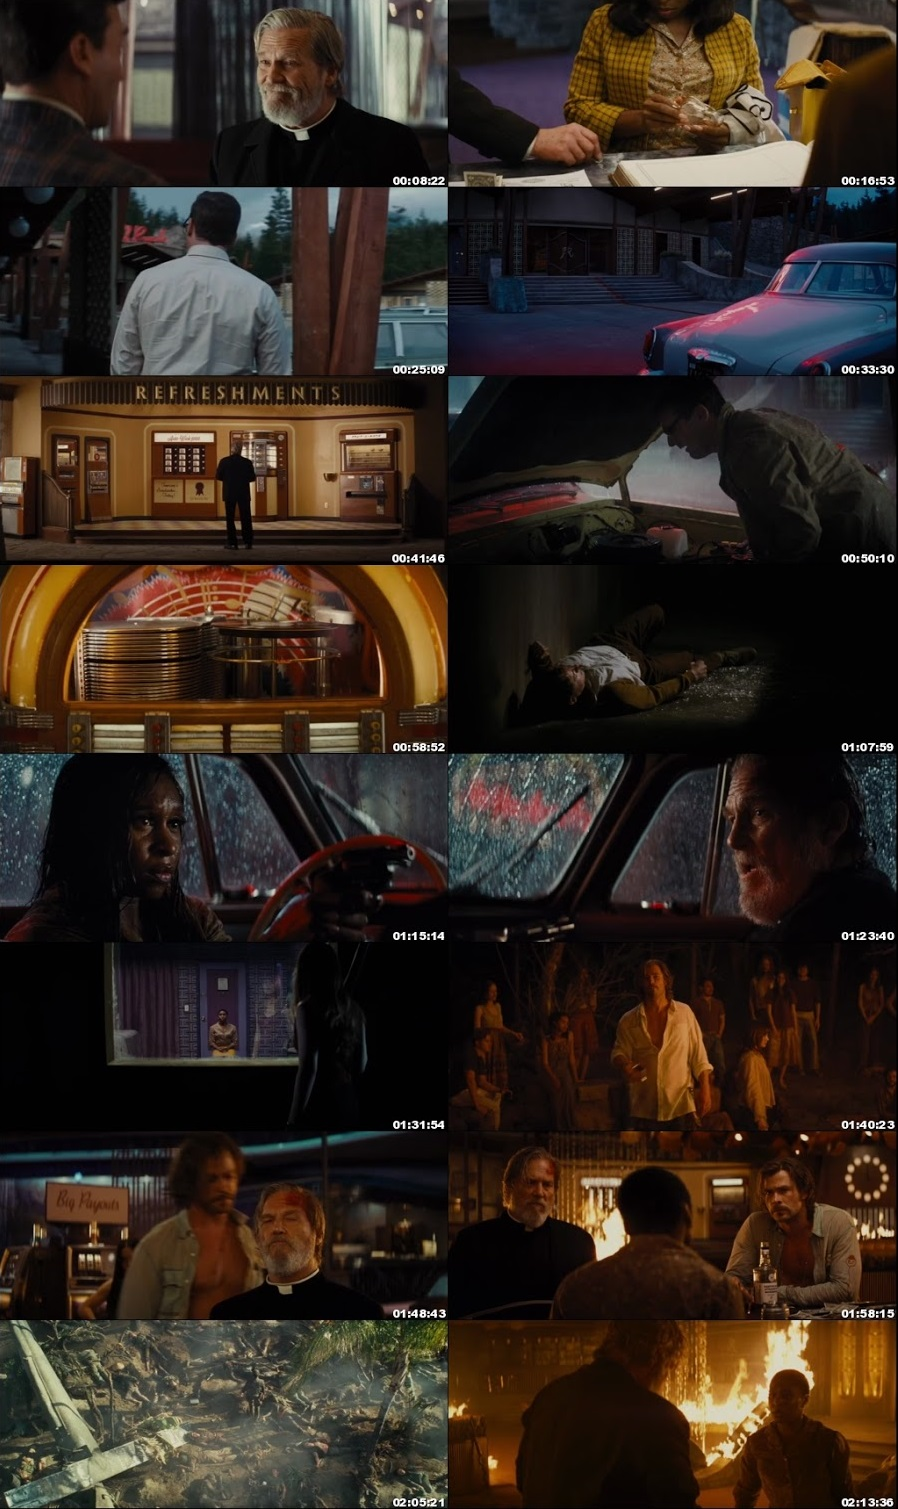 Bad Times at the El Royale 2018 Full Movie Download